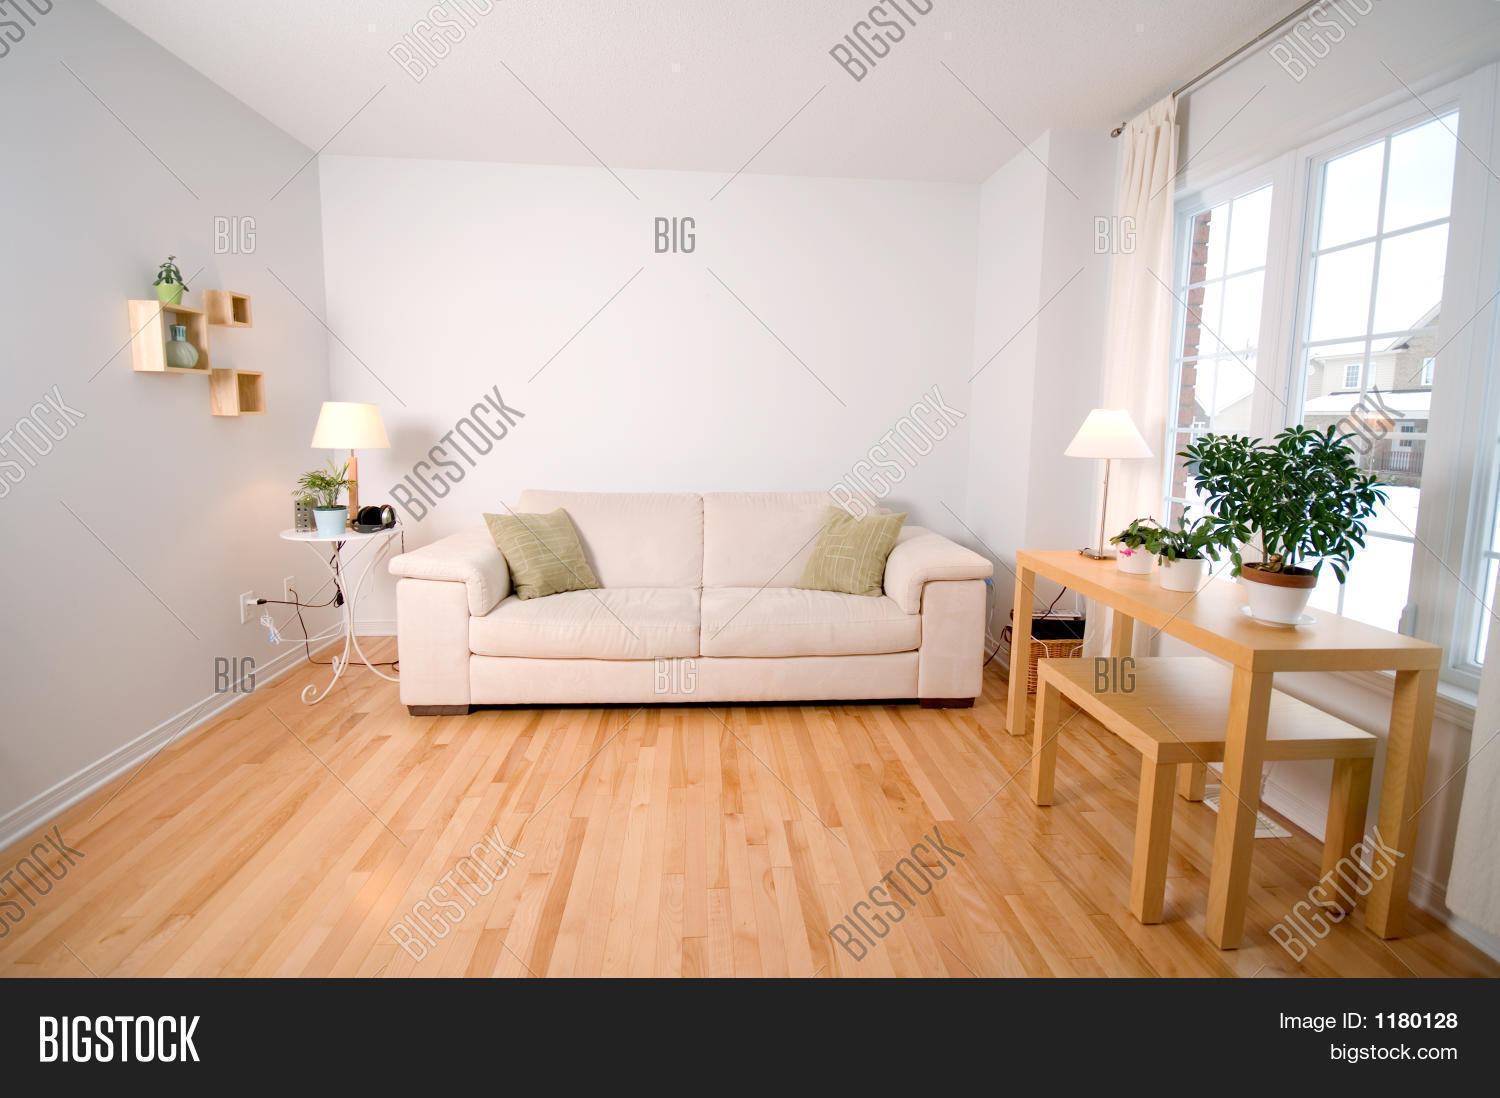 beige,bright,couch,floor,home,house,interior,light,living,living room,livingroom,living room interior,modern,modern living room,room,sofa,white,window,wood,wooden,zen